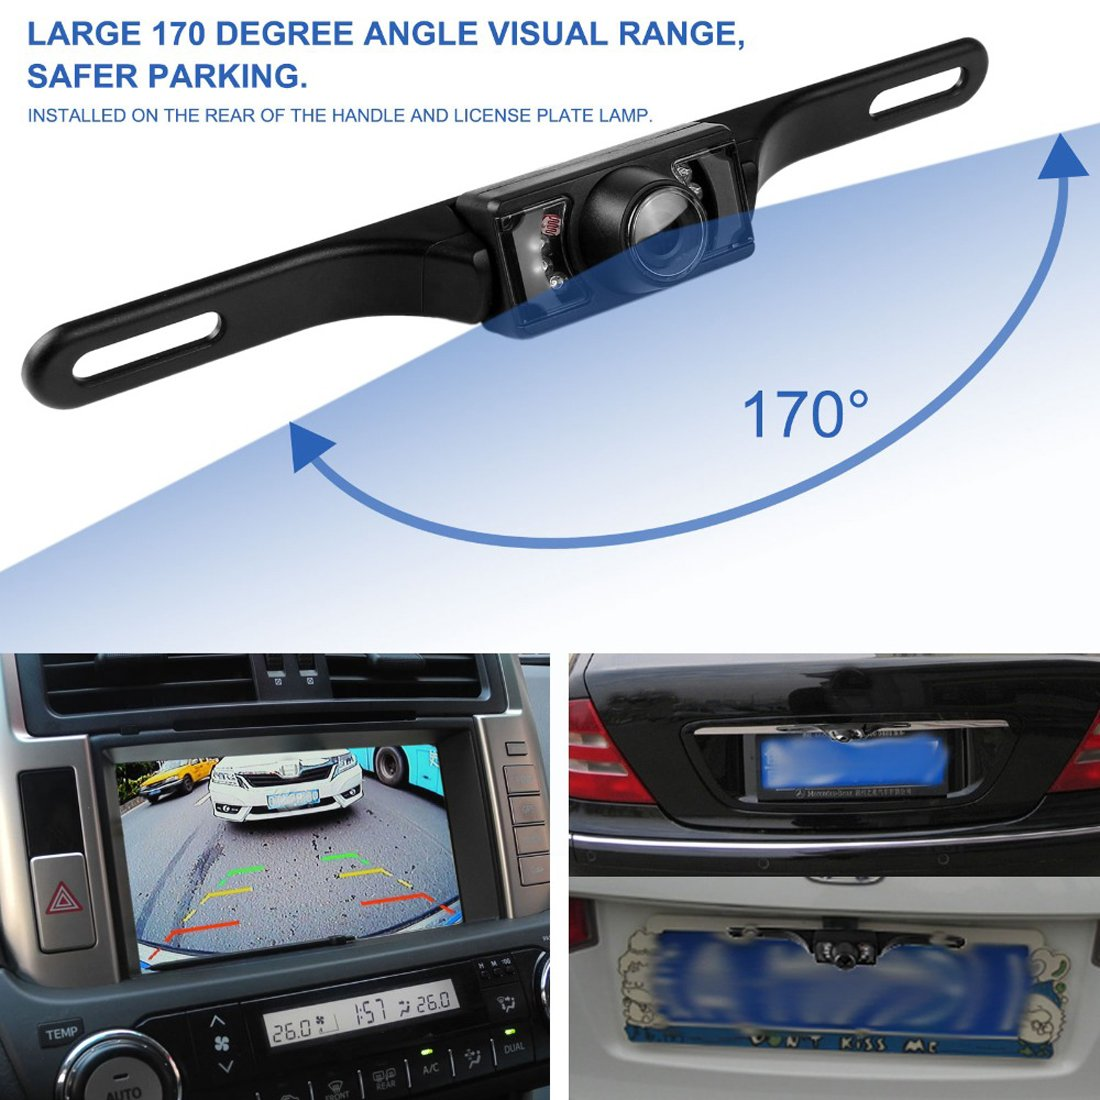 Rear View Camera Wgia Waterproof Backup License Plcm18bc Wiring Diagram Plate Car Reverse Parking High Definition Color Wide Viewing Angle Night Vision